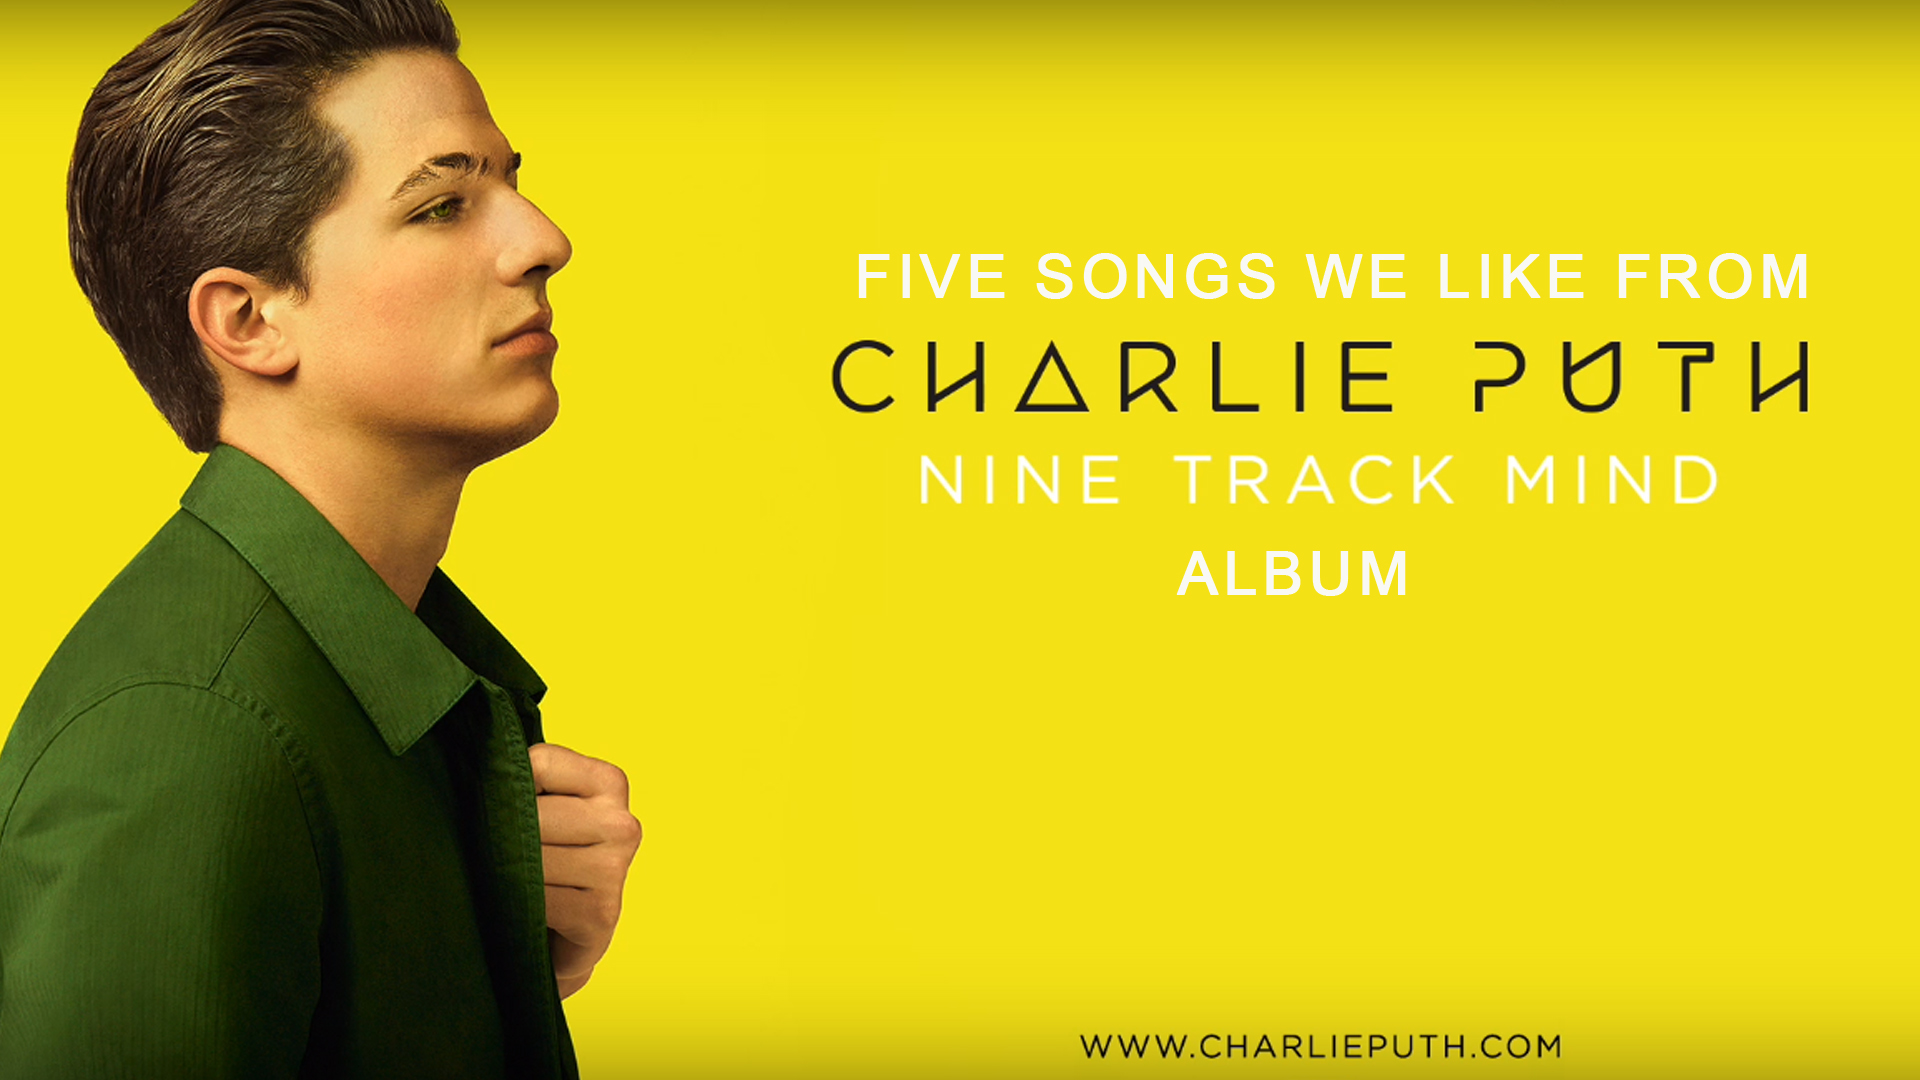 TOP FIVE SONGS WE LIKE FROM CHARLIE PUTH: NINE TRACK MIND ALBUM